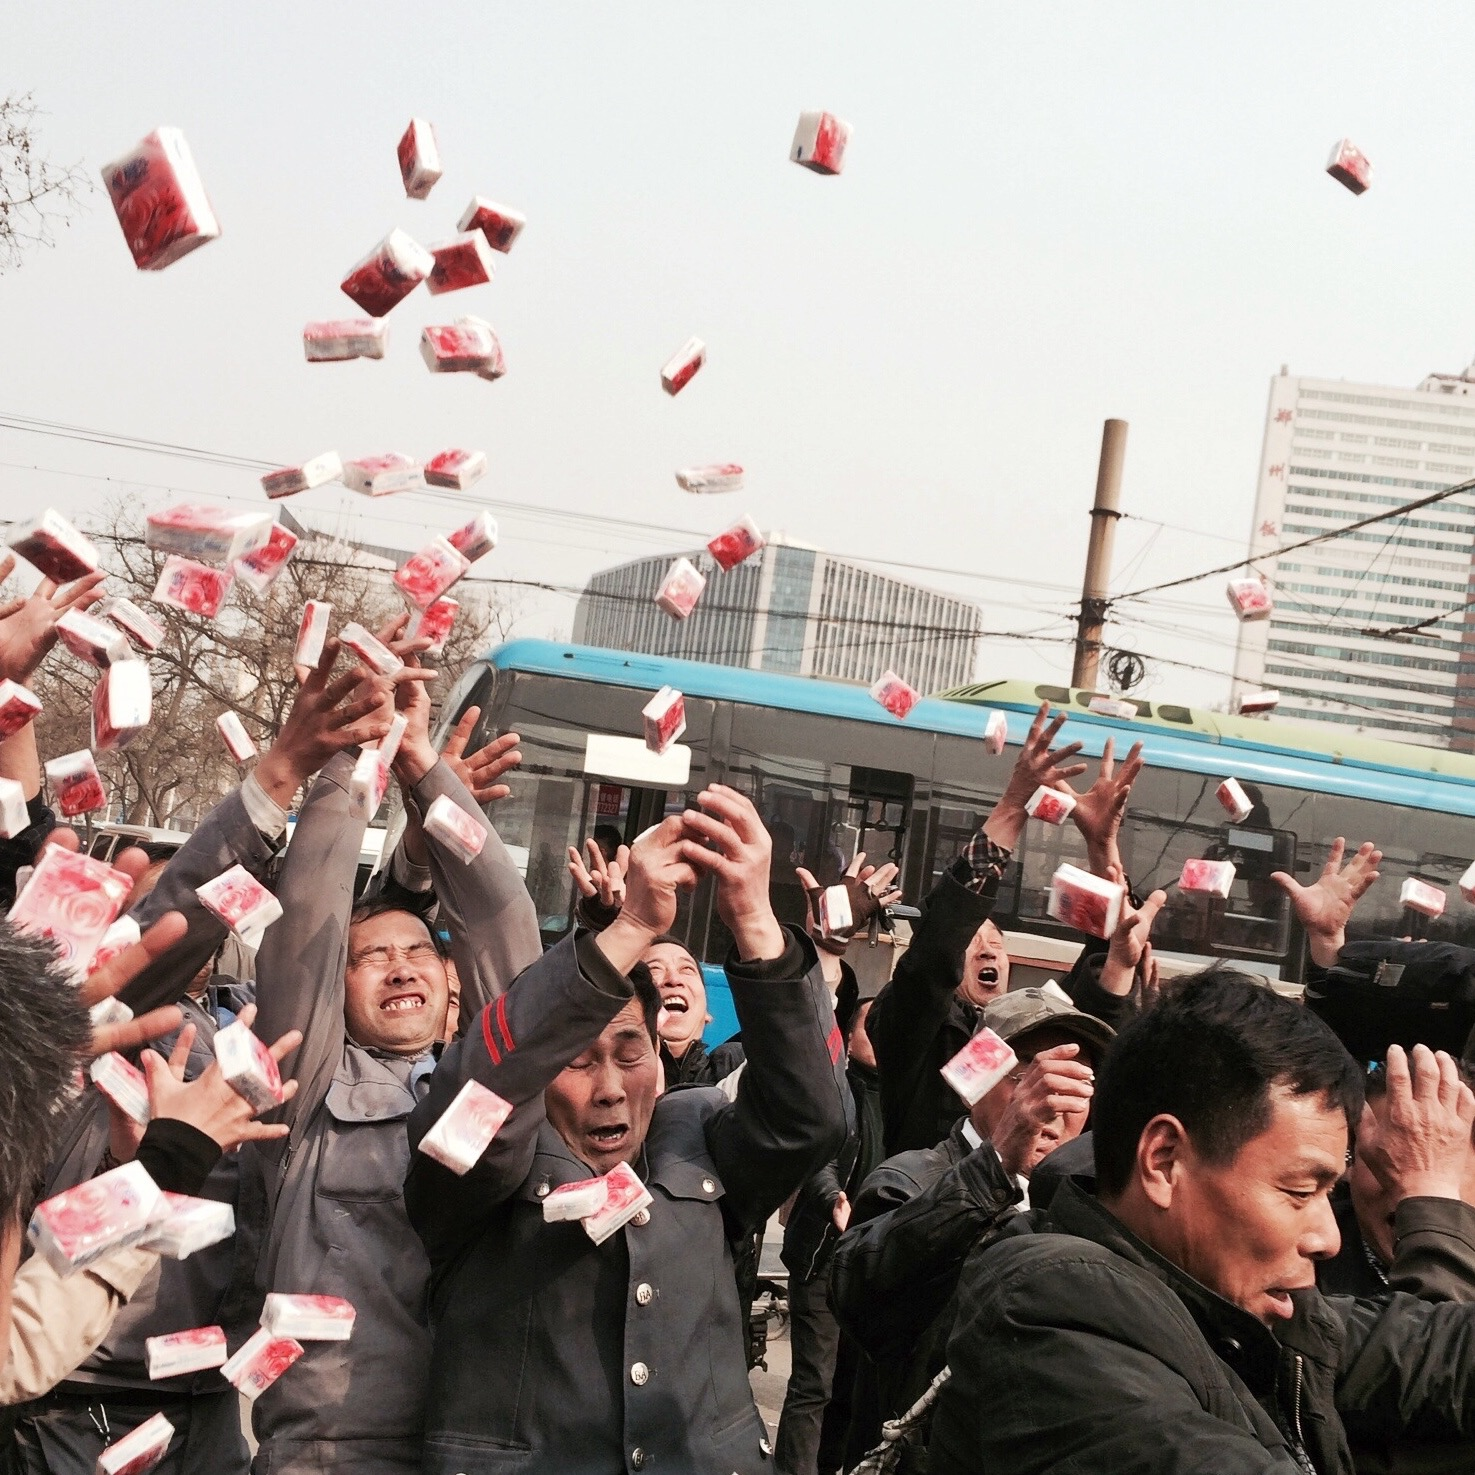 Factory workers scramble to catch free paper napkins thrown from a stage during a promotional event. Zhengzhou.